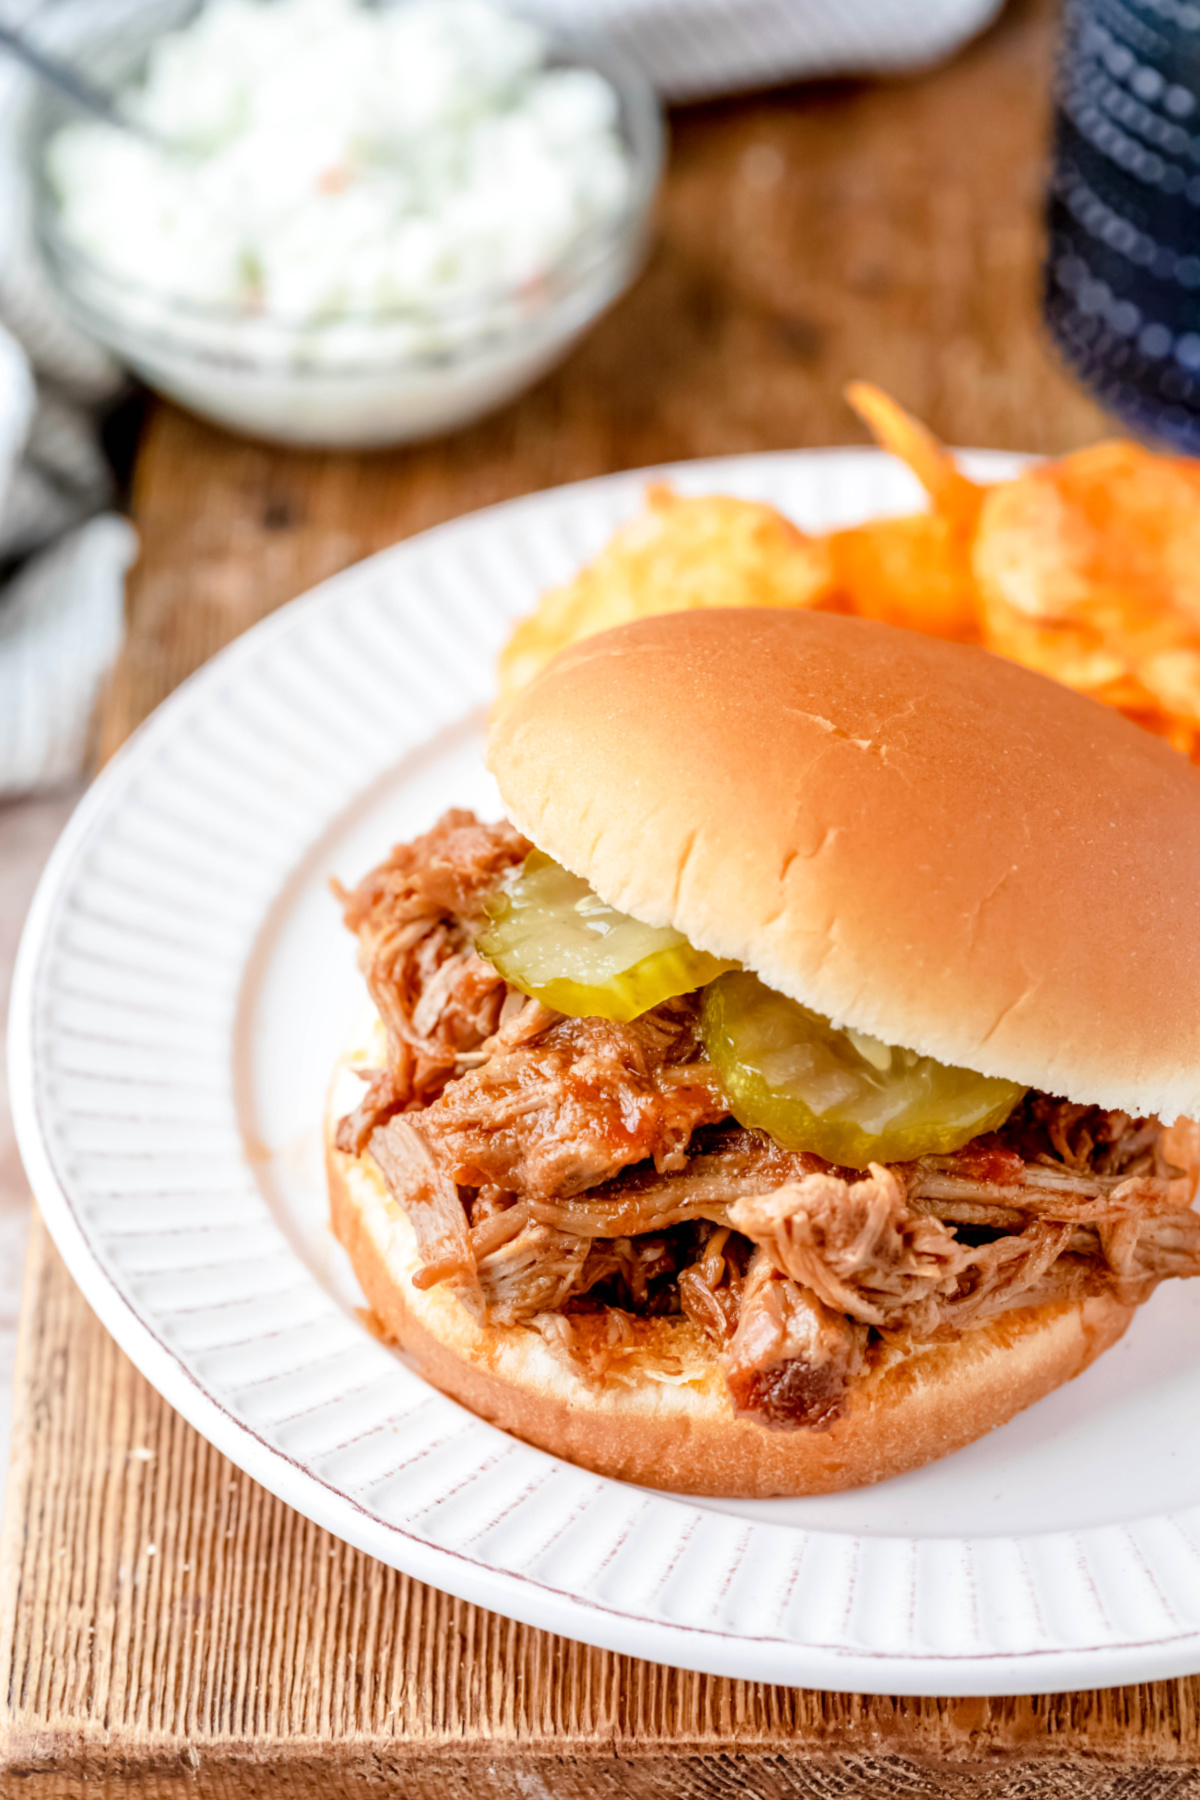 North Carolina pulled pork sandwich next to chips